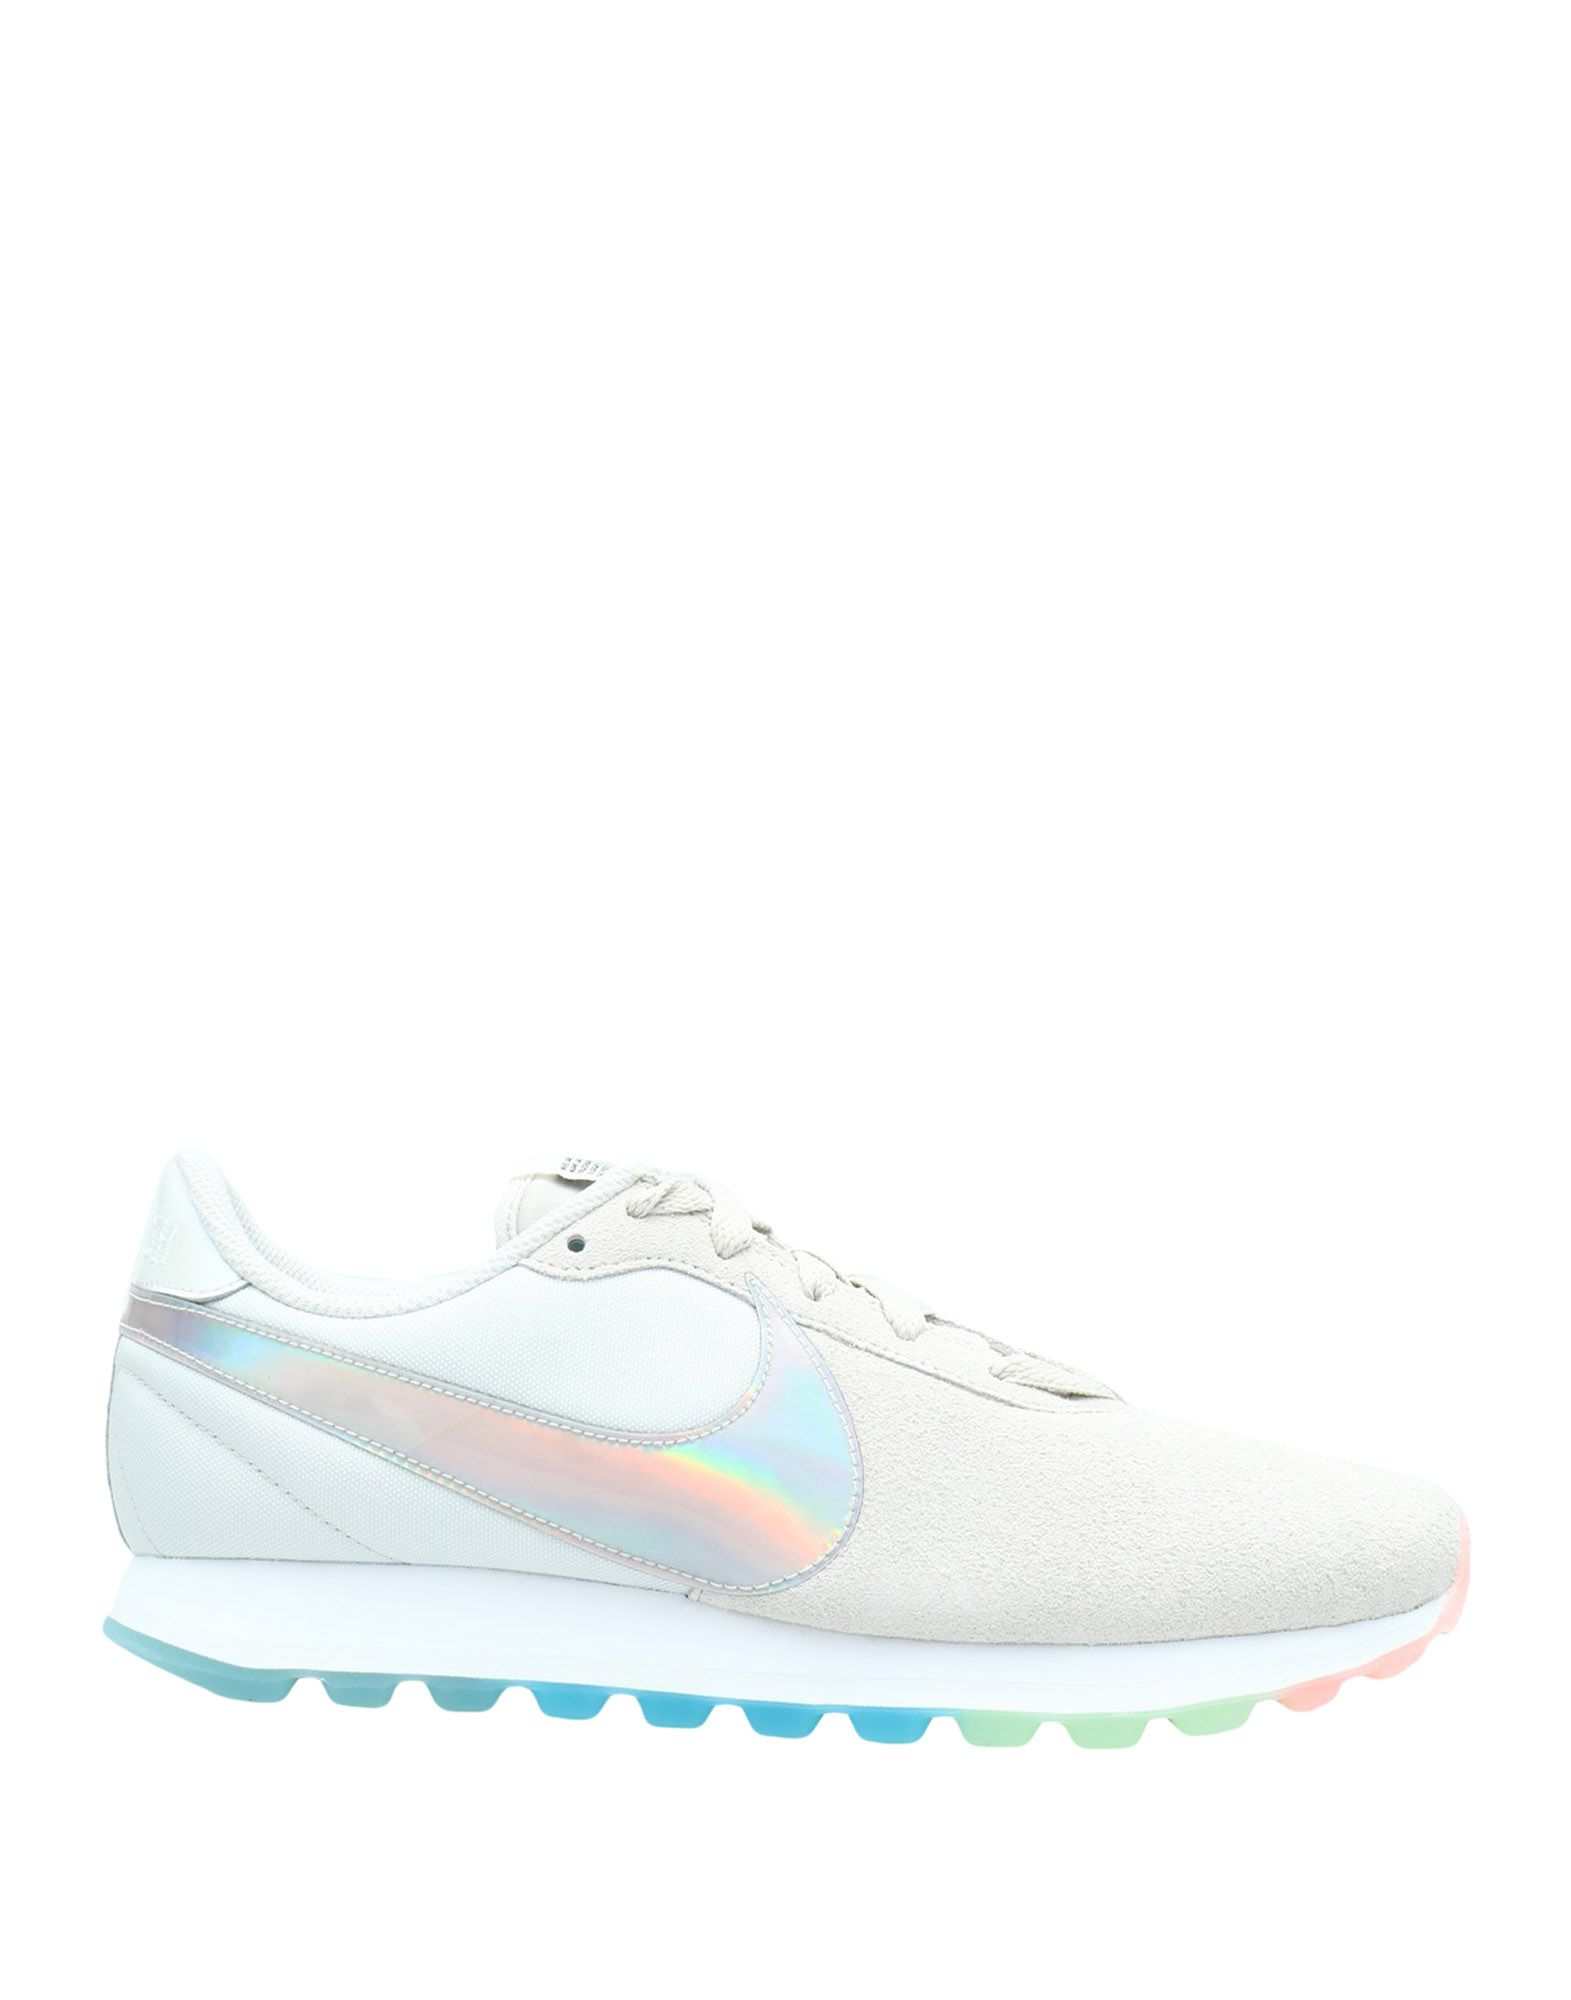 Baskets Nike Pre Love O.X. Femme Baskets Nike Gris clair